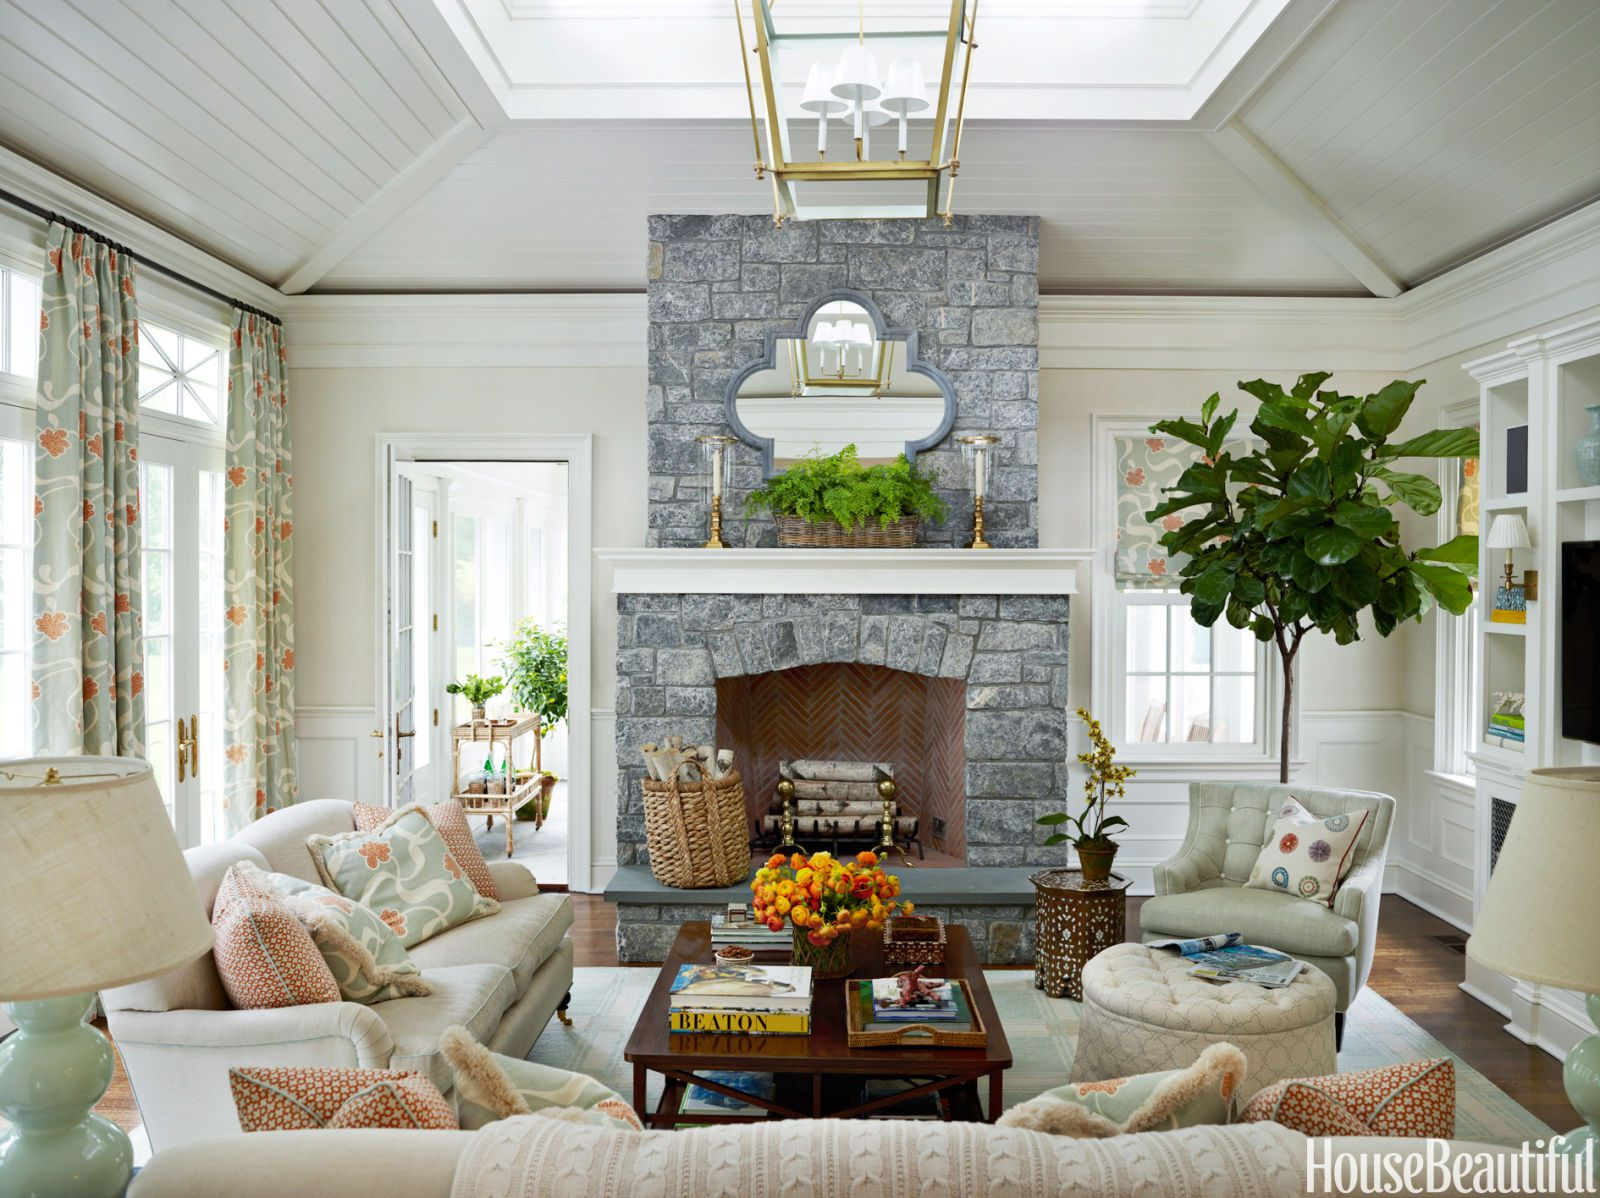 65 ideas for designing family rooms - decorating tips for family rooms CTMEBKX